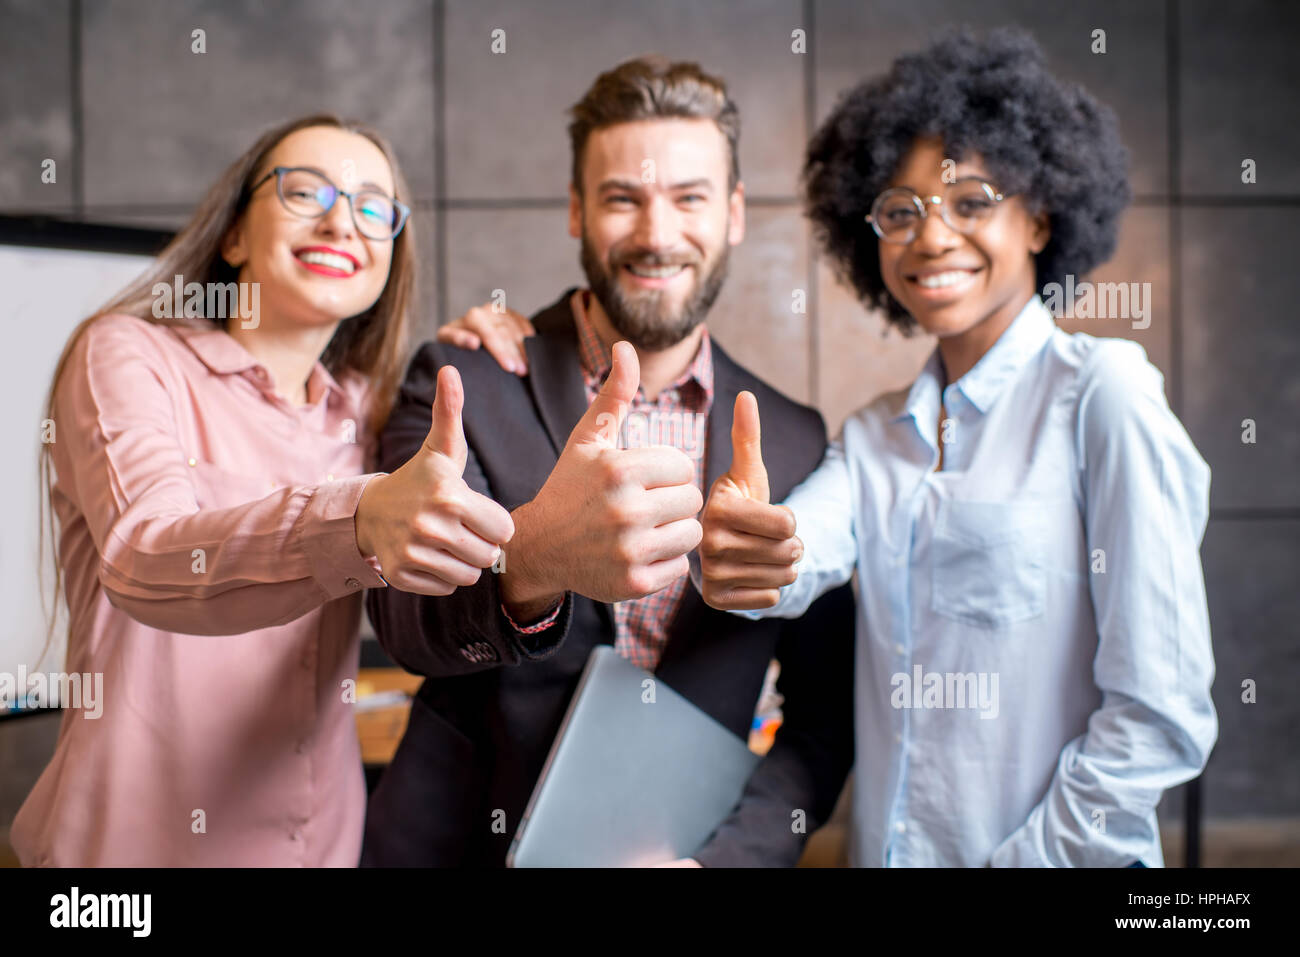 Portrait of multi ethnic coworkers - Stock Image